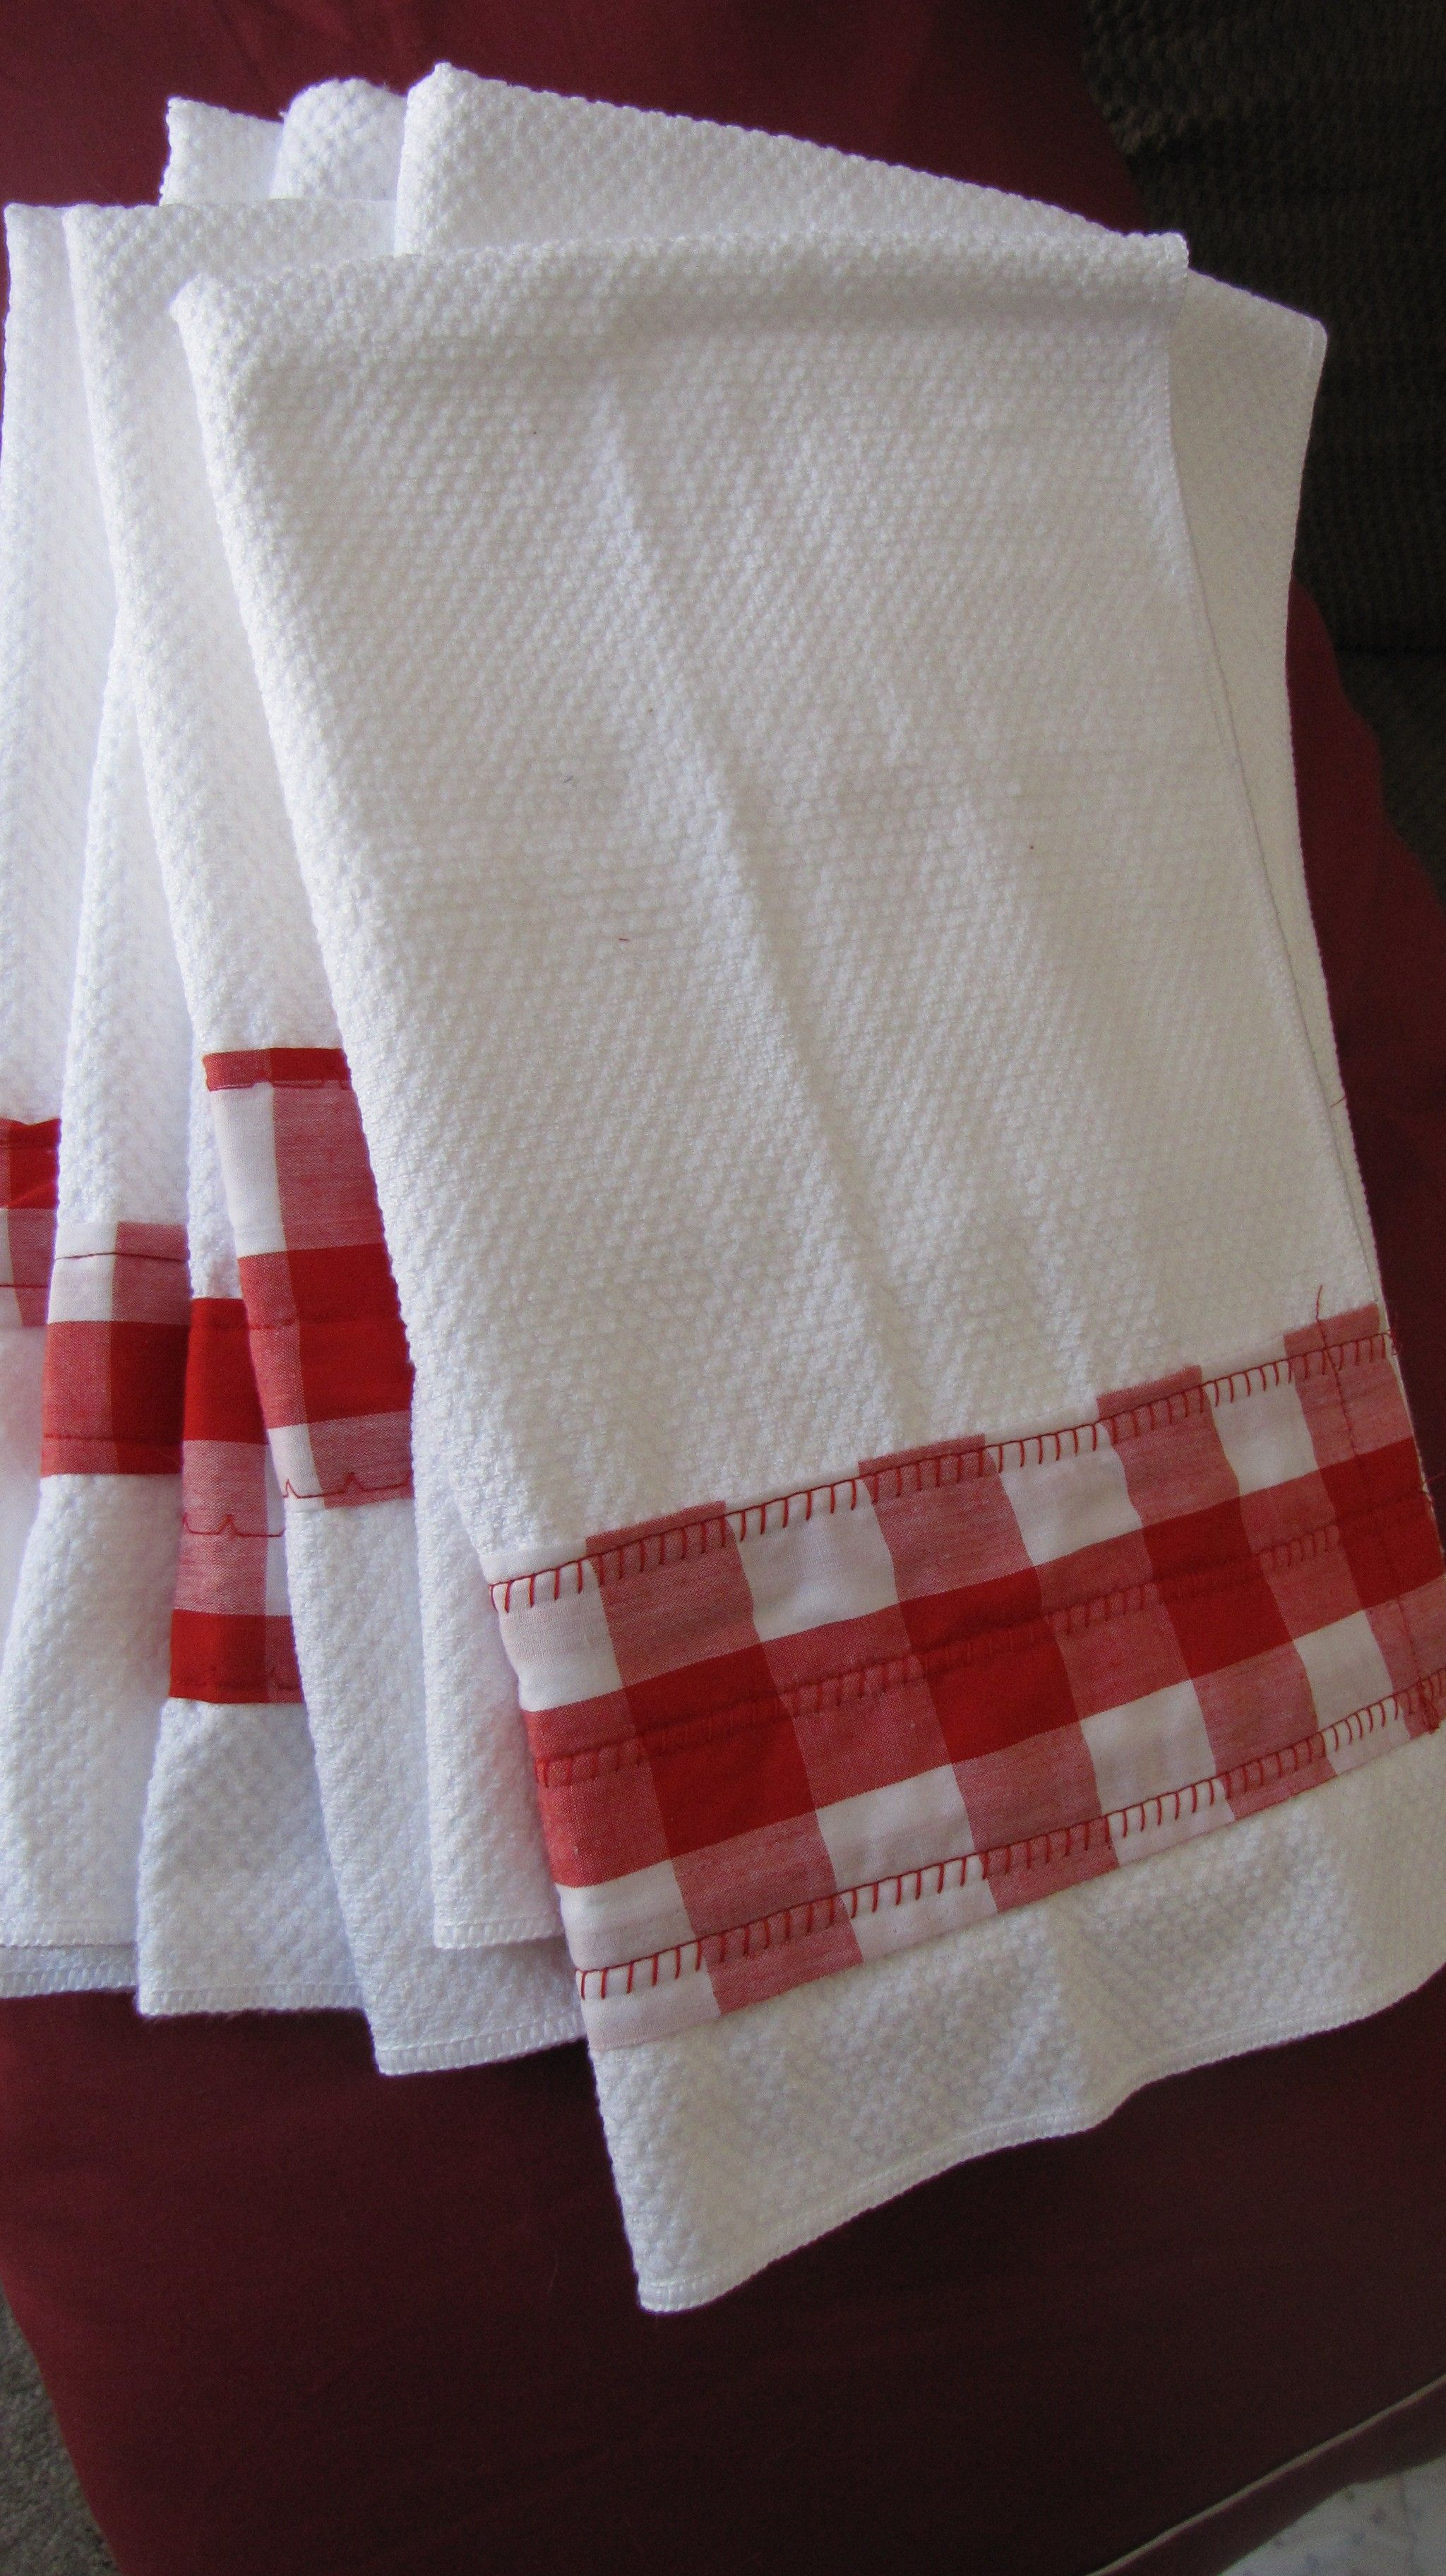 Gingham Sewed To Cheap Walmart Kitchen Towels To Decorate Them